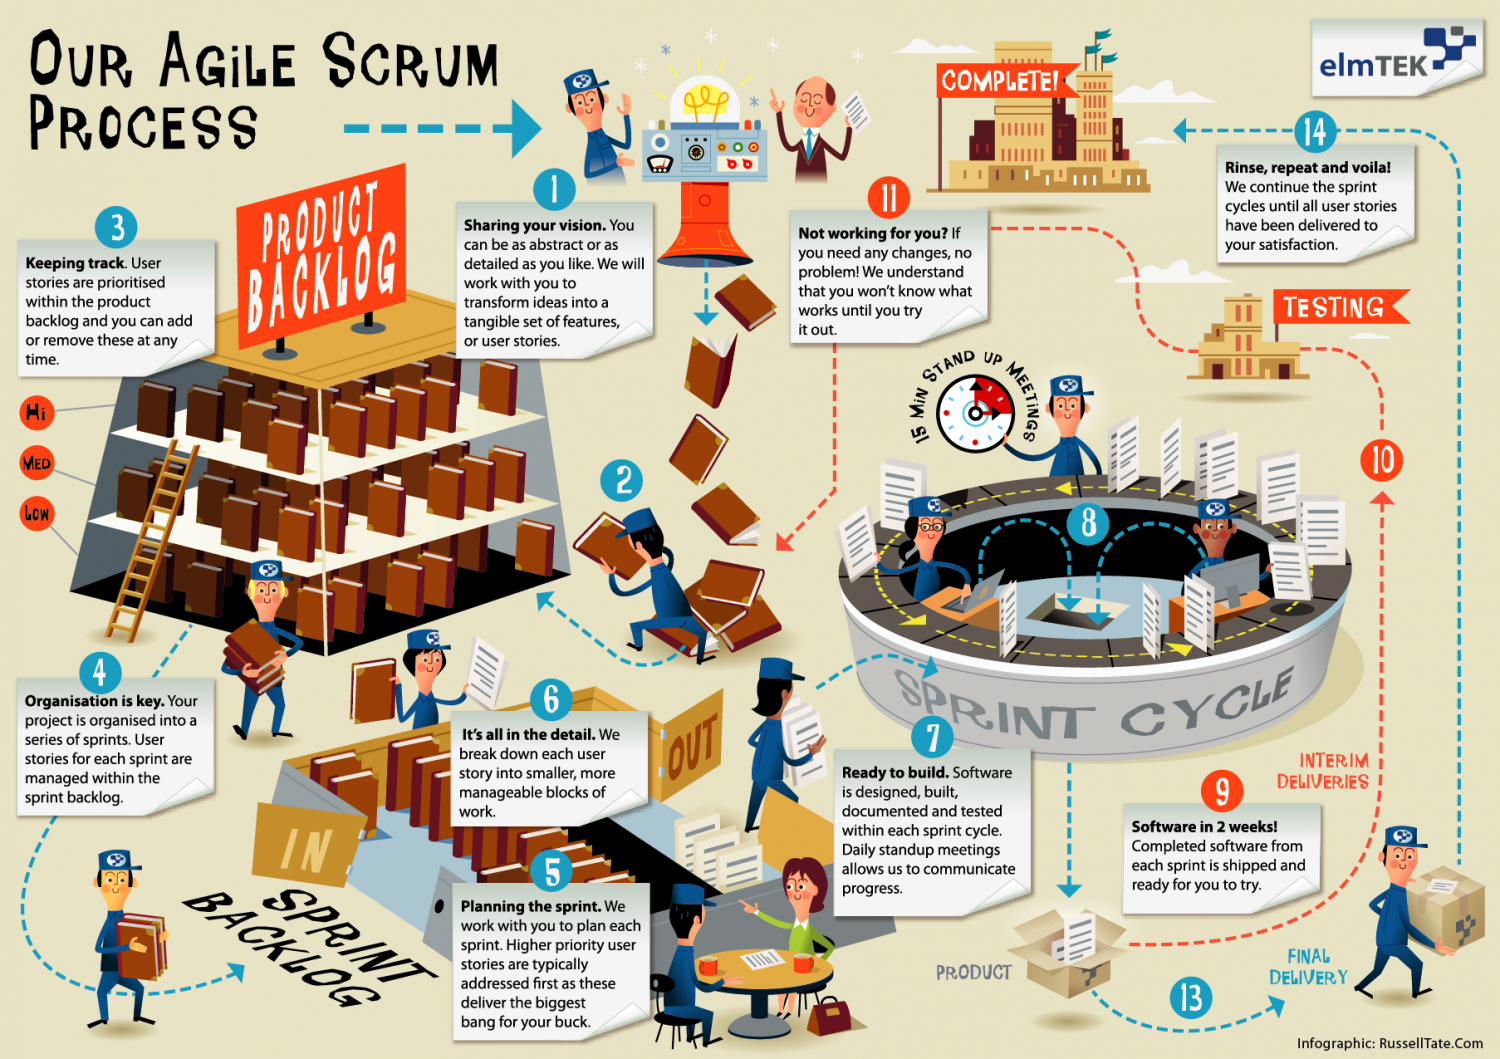 The Agile Scrum Process Infographic